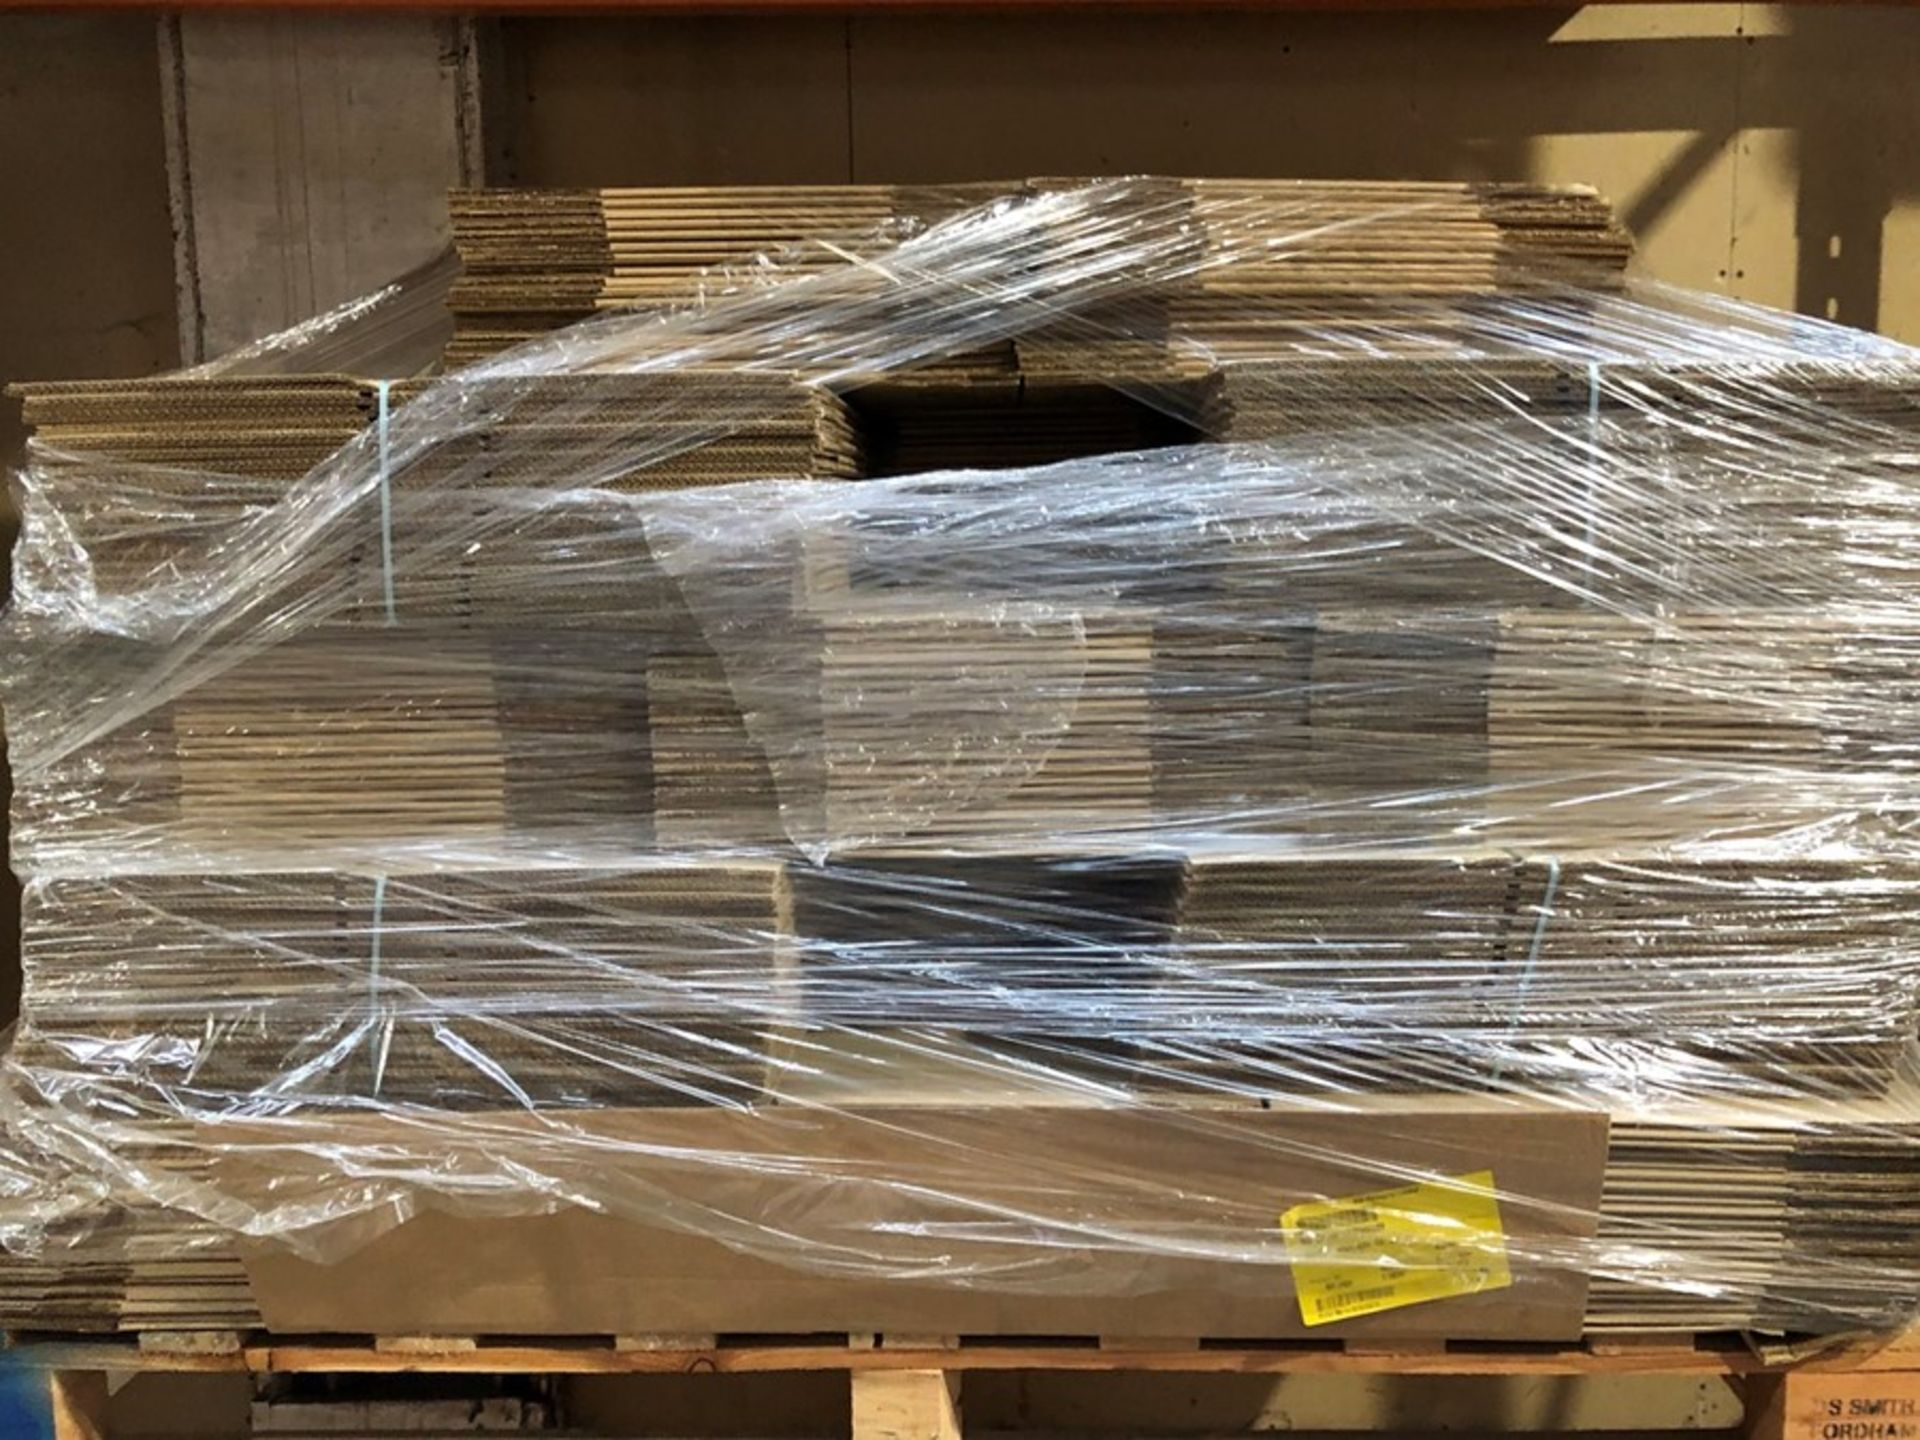 Lot 66 - 1 LOT TO CONTAIN SEVERALS STACKS OF SMALL CARDBOARD BOXES / PLEASE NOTE THAT SIZES MARY VARY (PUBLIC